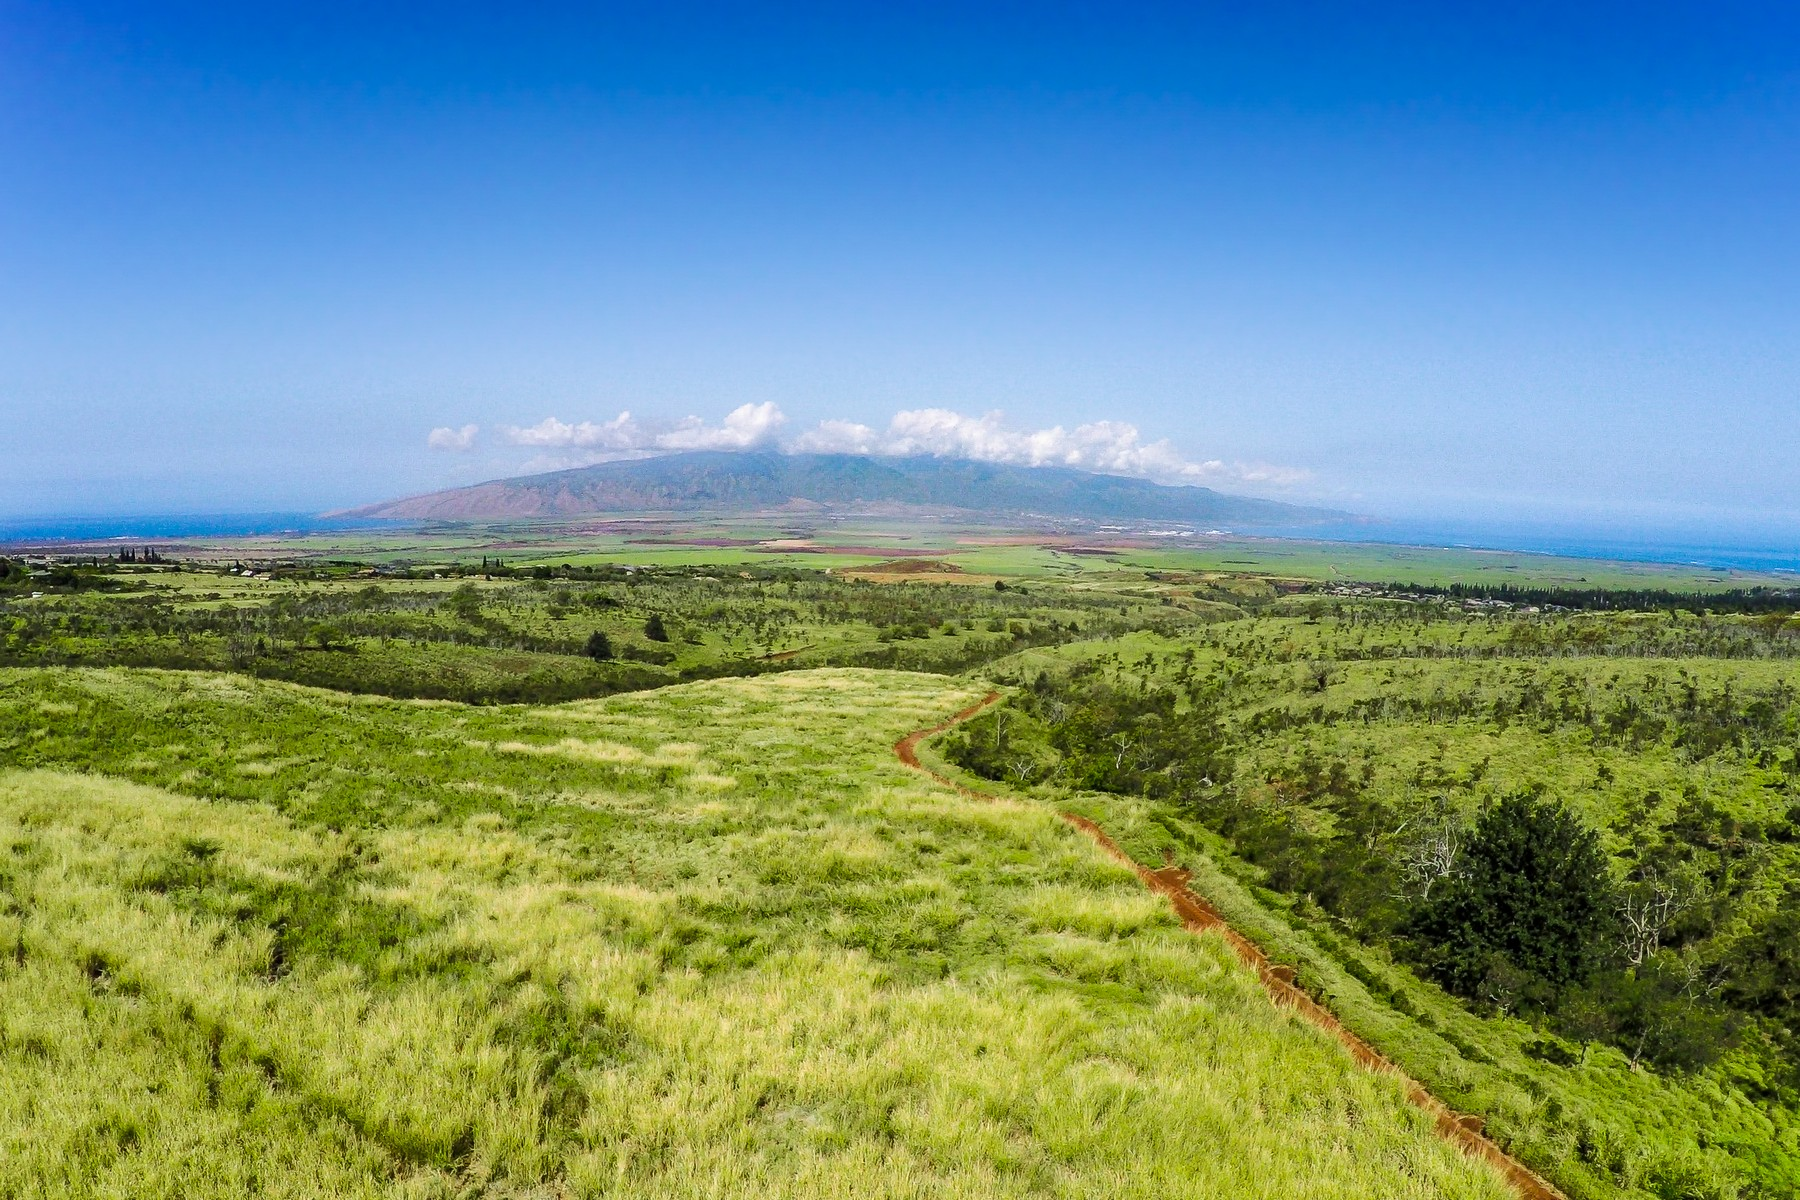 Terreno para Venda às Magnificent 464 Acre Maui Ranch Property 0 Kula Highway Kula, Havaí 96790 Estados Unidos